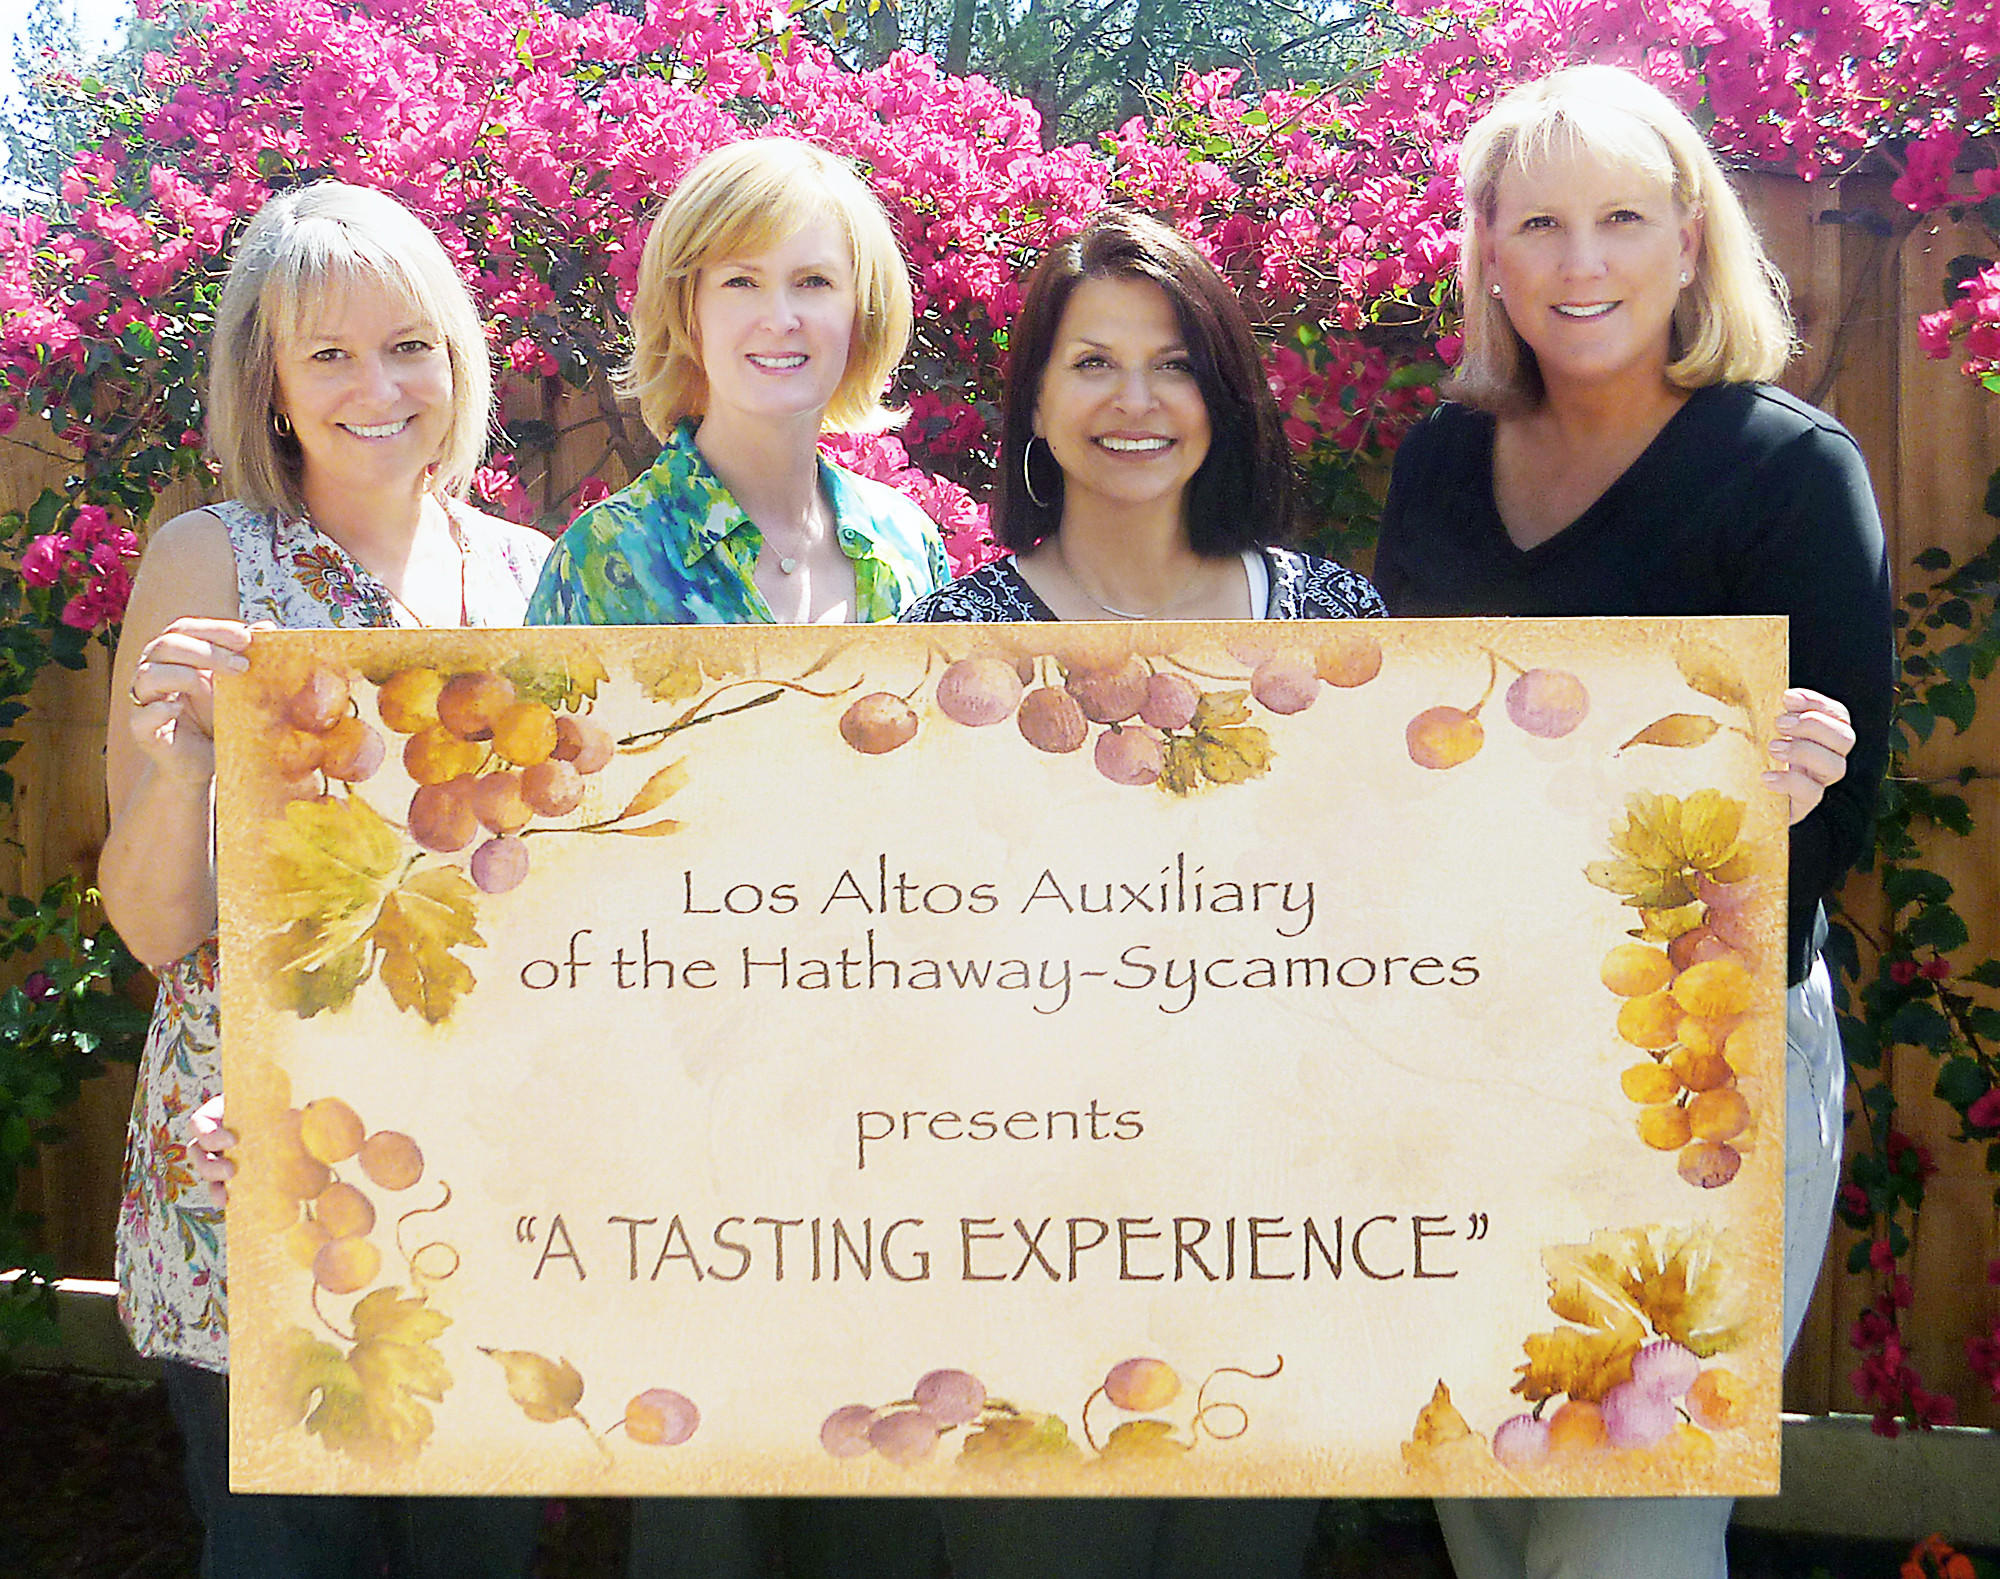 The Los Altos Auxiliary of Hathaway-Sycamores Child and Family Services is planning its annual wine-tasting fundraiser, which will take place April 27. La Cañada residents looking forward to the event are, from left, Laurie Rodli, co-president of Los Altos, Diane Poryes co-chair of Wine Tasting event, Michele Listo co-chair of Wine Tasting event, and Jennifer Herzer, co-president of Los Altos.